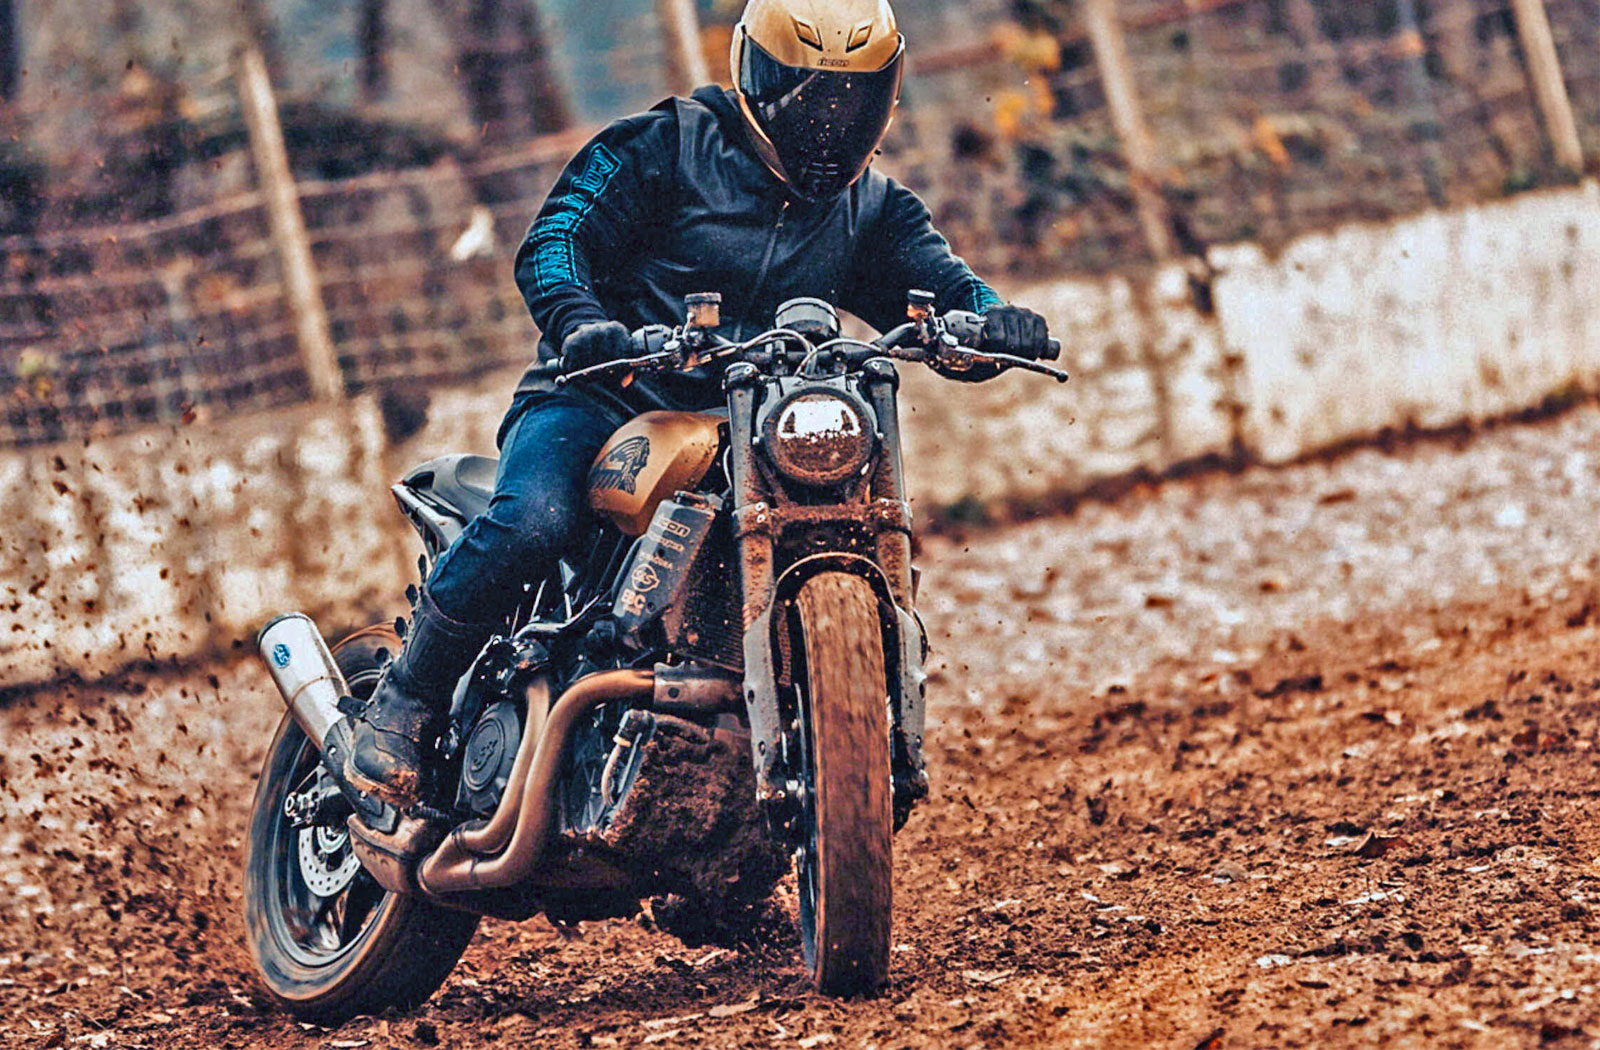 Icon boots flat track racing